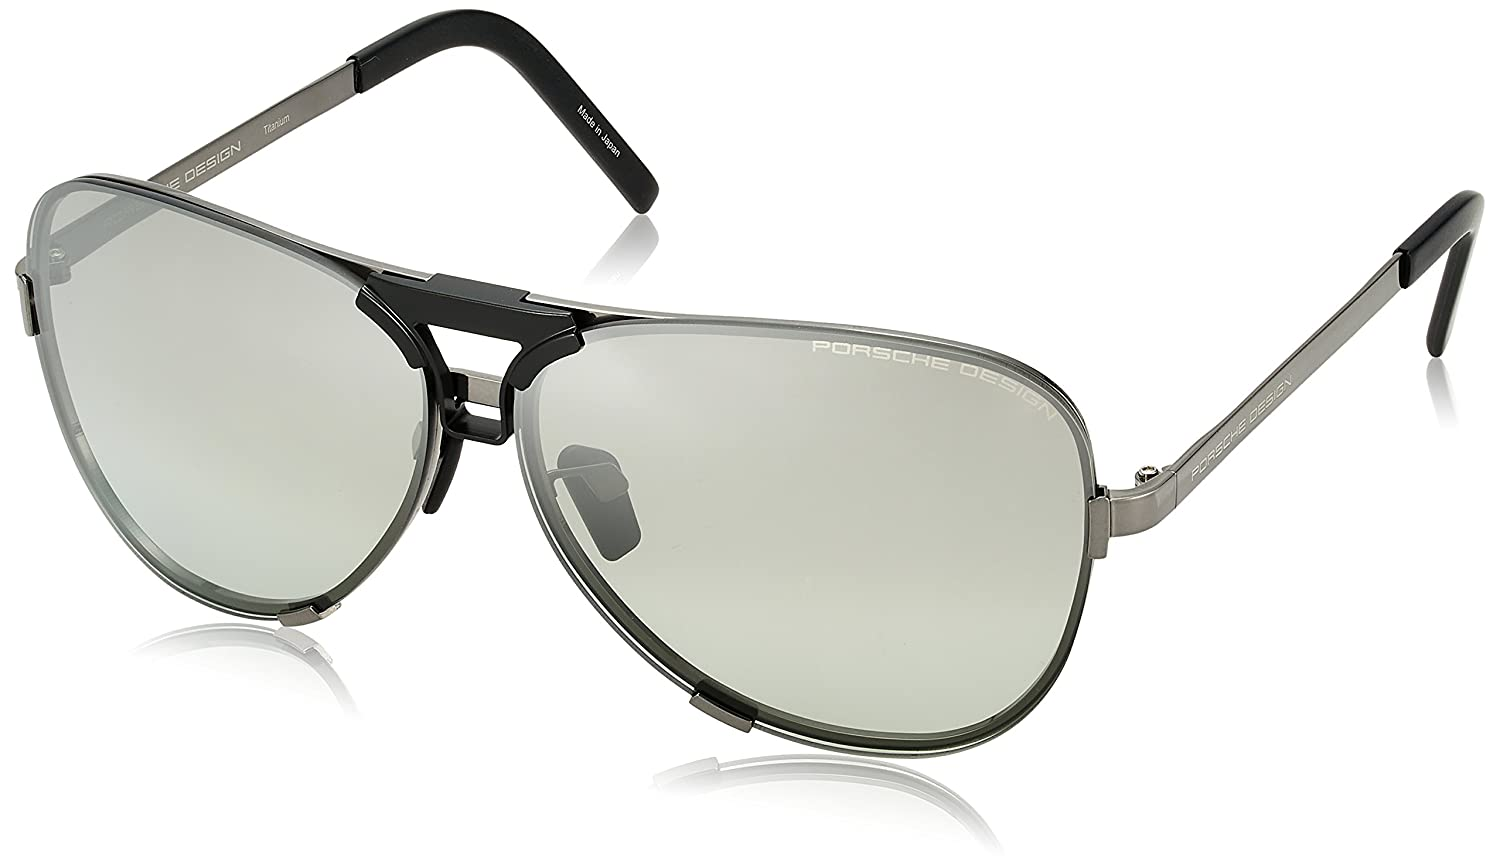 7158a86f14fe Amazon.com  Porsche Design P8678 A Dark Gun Aviator Mens Sunglasses  Interchangeable Lens  Clothing